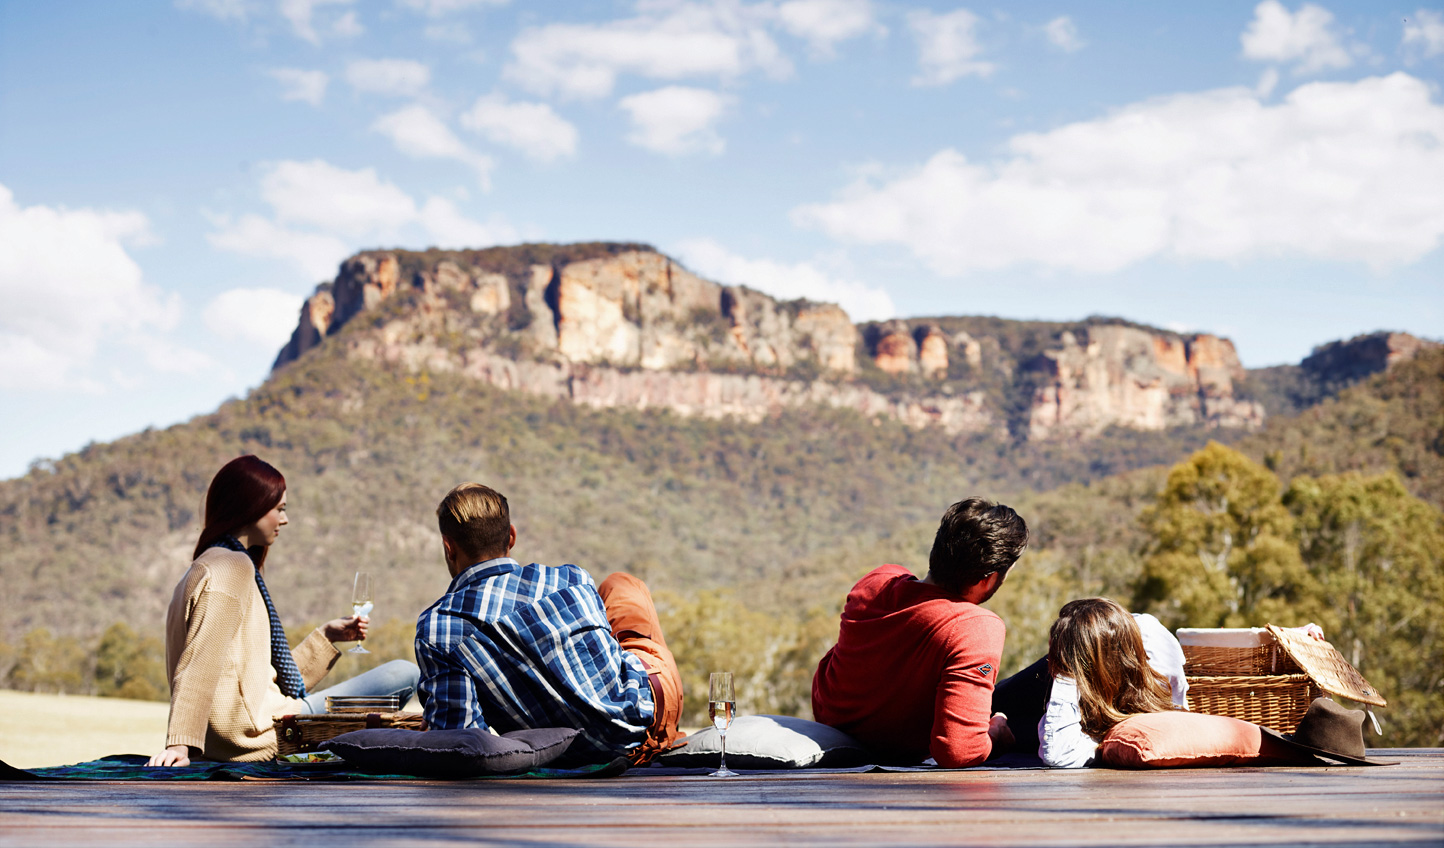 Find a quiet spot for a picnic with an all-inspiring view